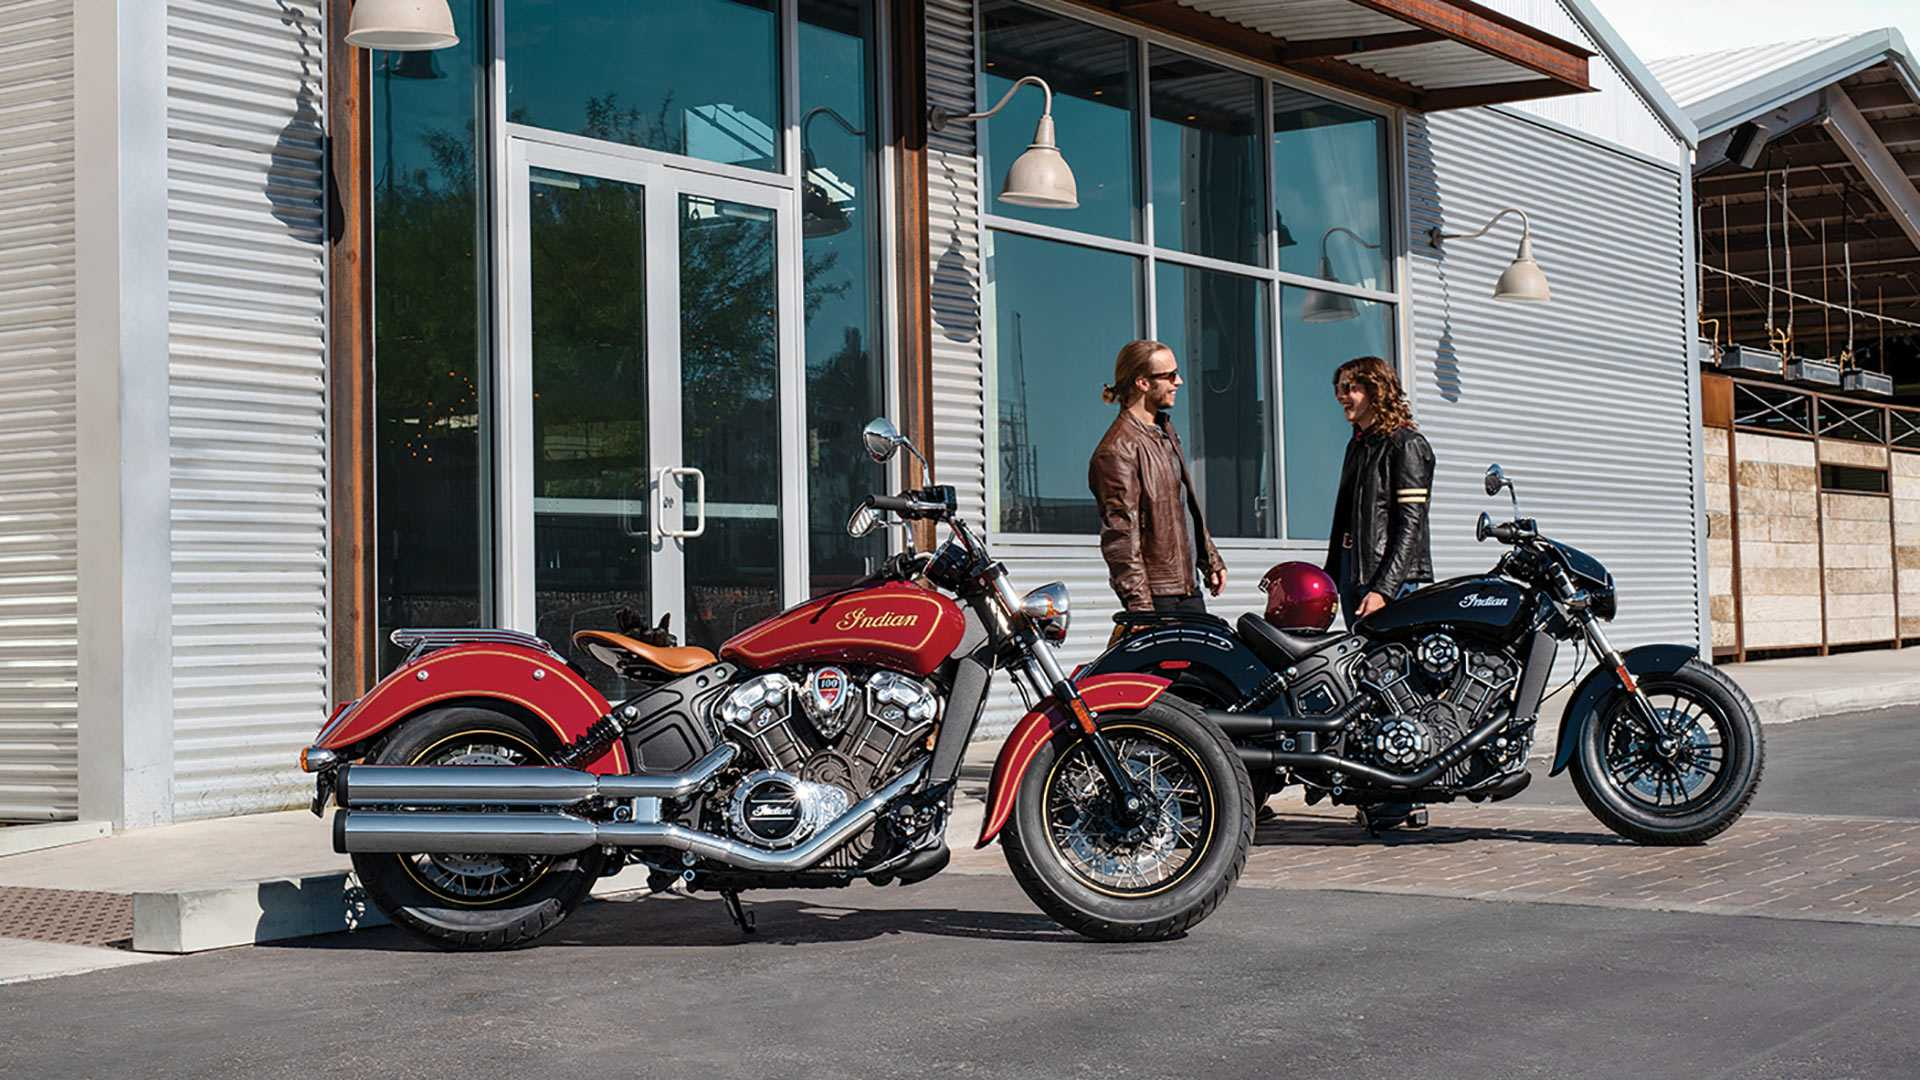 2020 Indian Scout 100th anniversary edition motorcycle